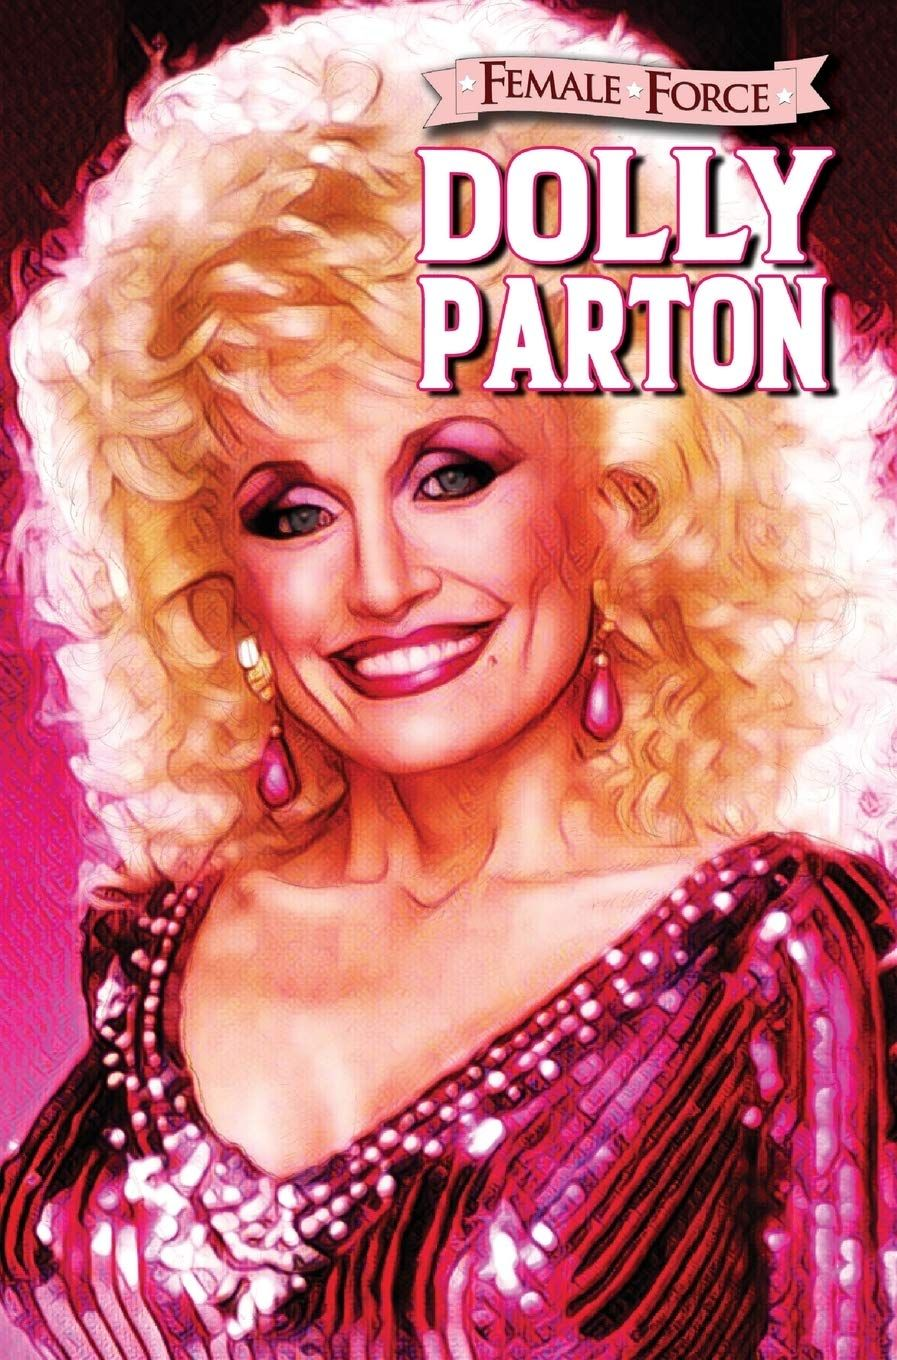 Dolly Parton gets her own biographical comic book 18